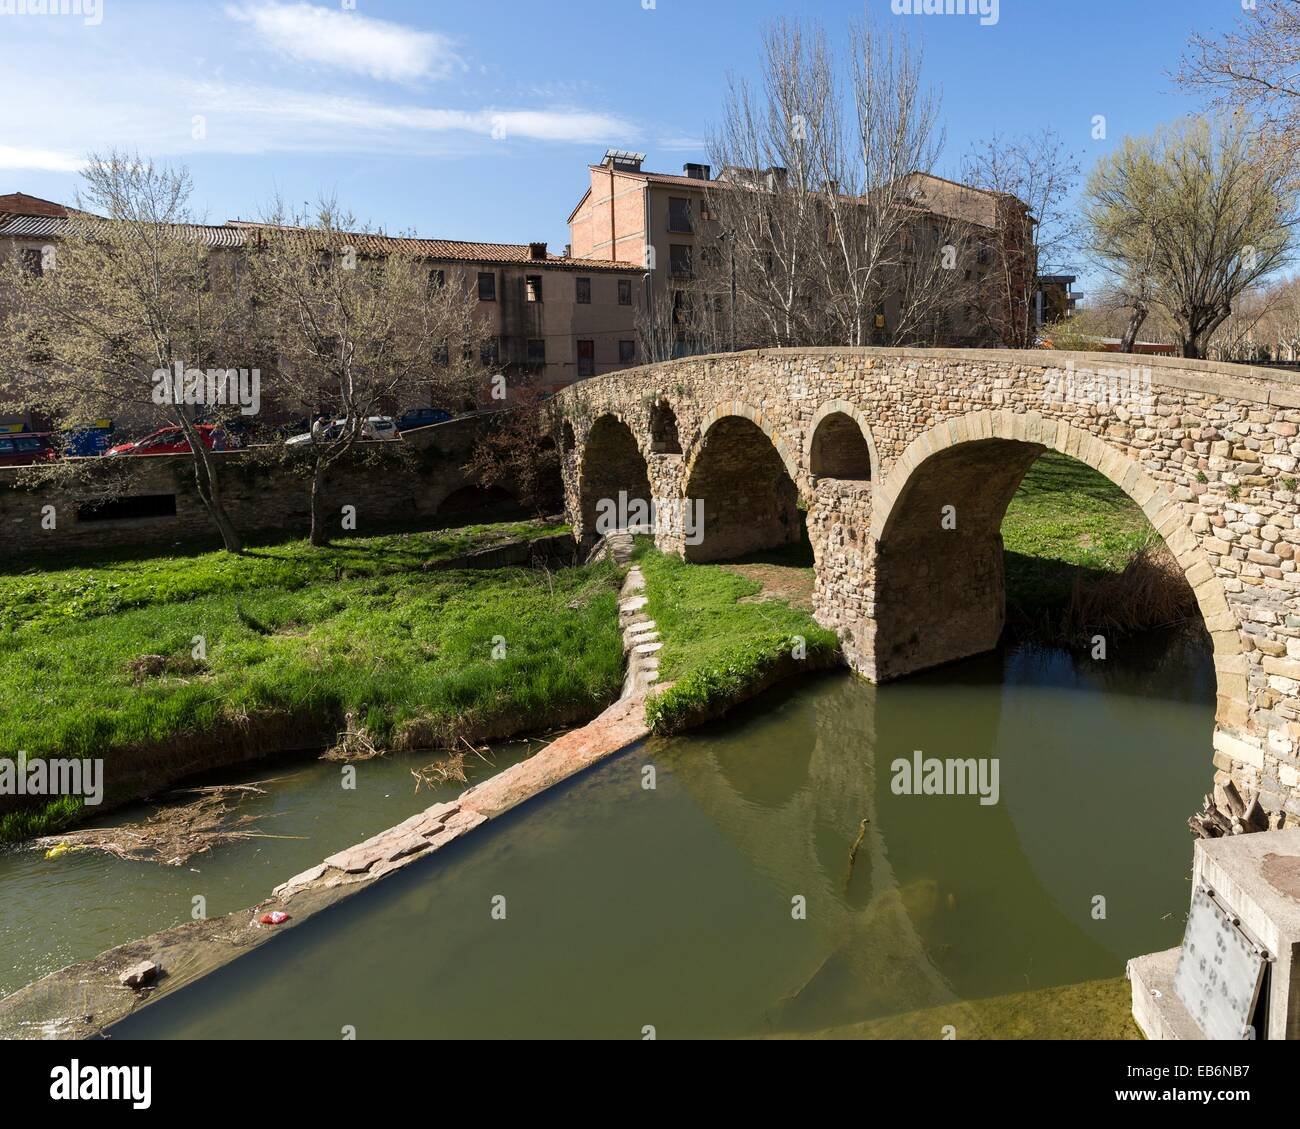 Vic, Old town and Roman bridge, Osona, Barcelona, Spain Stock Photo